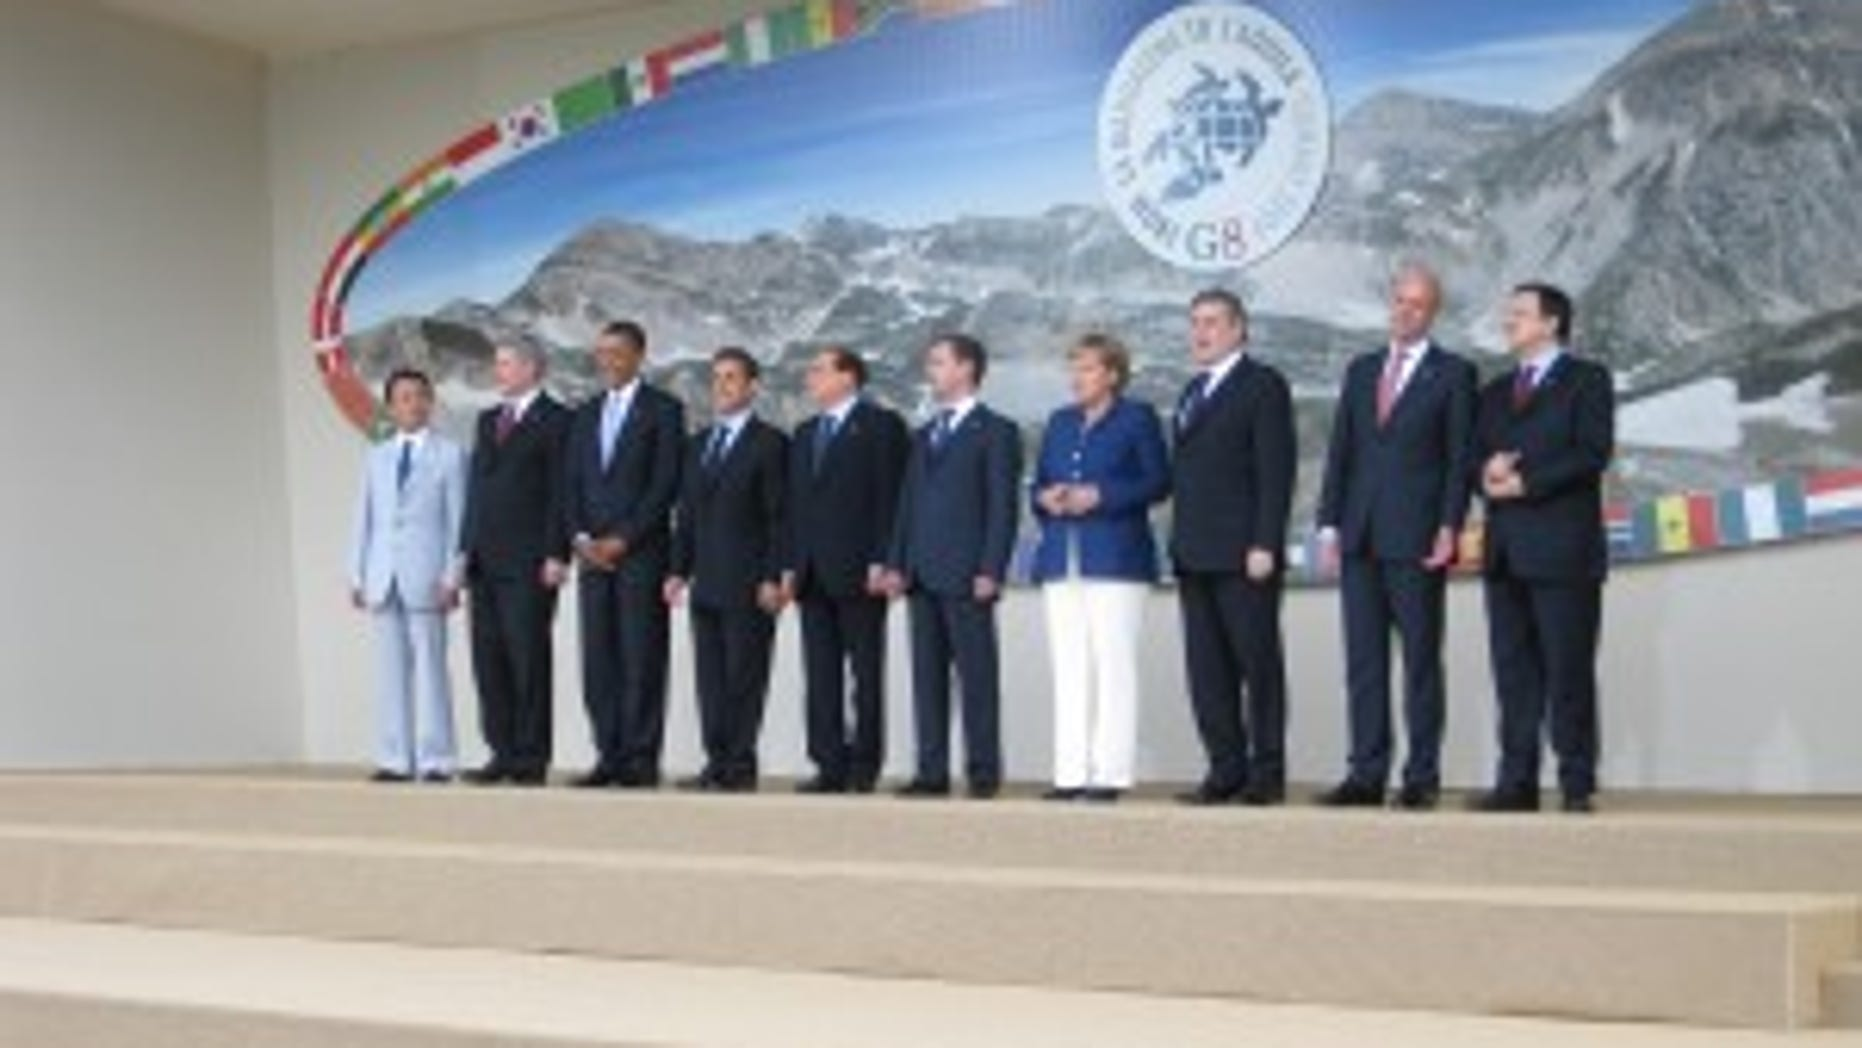 """G8 Leaders """"Class Photo"""" in L'Aquila, Italy (Photo by Eve Zibel)"""